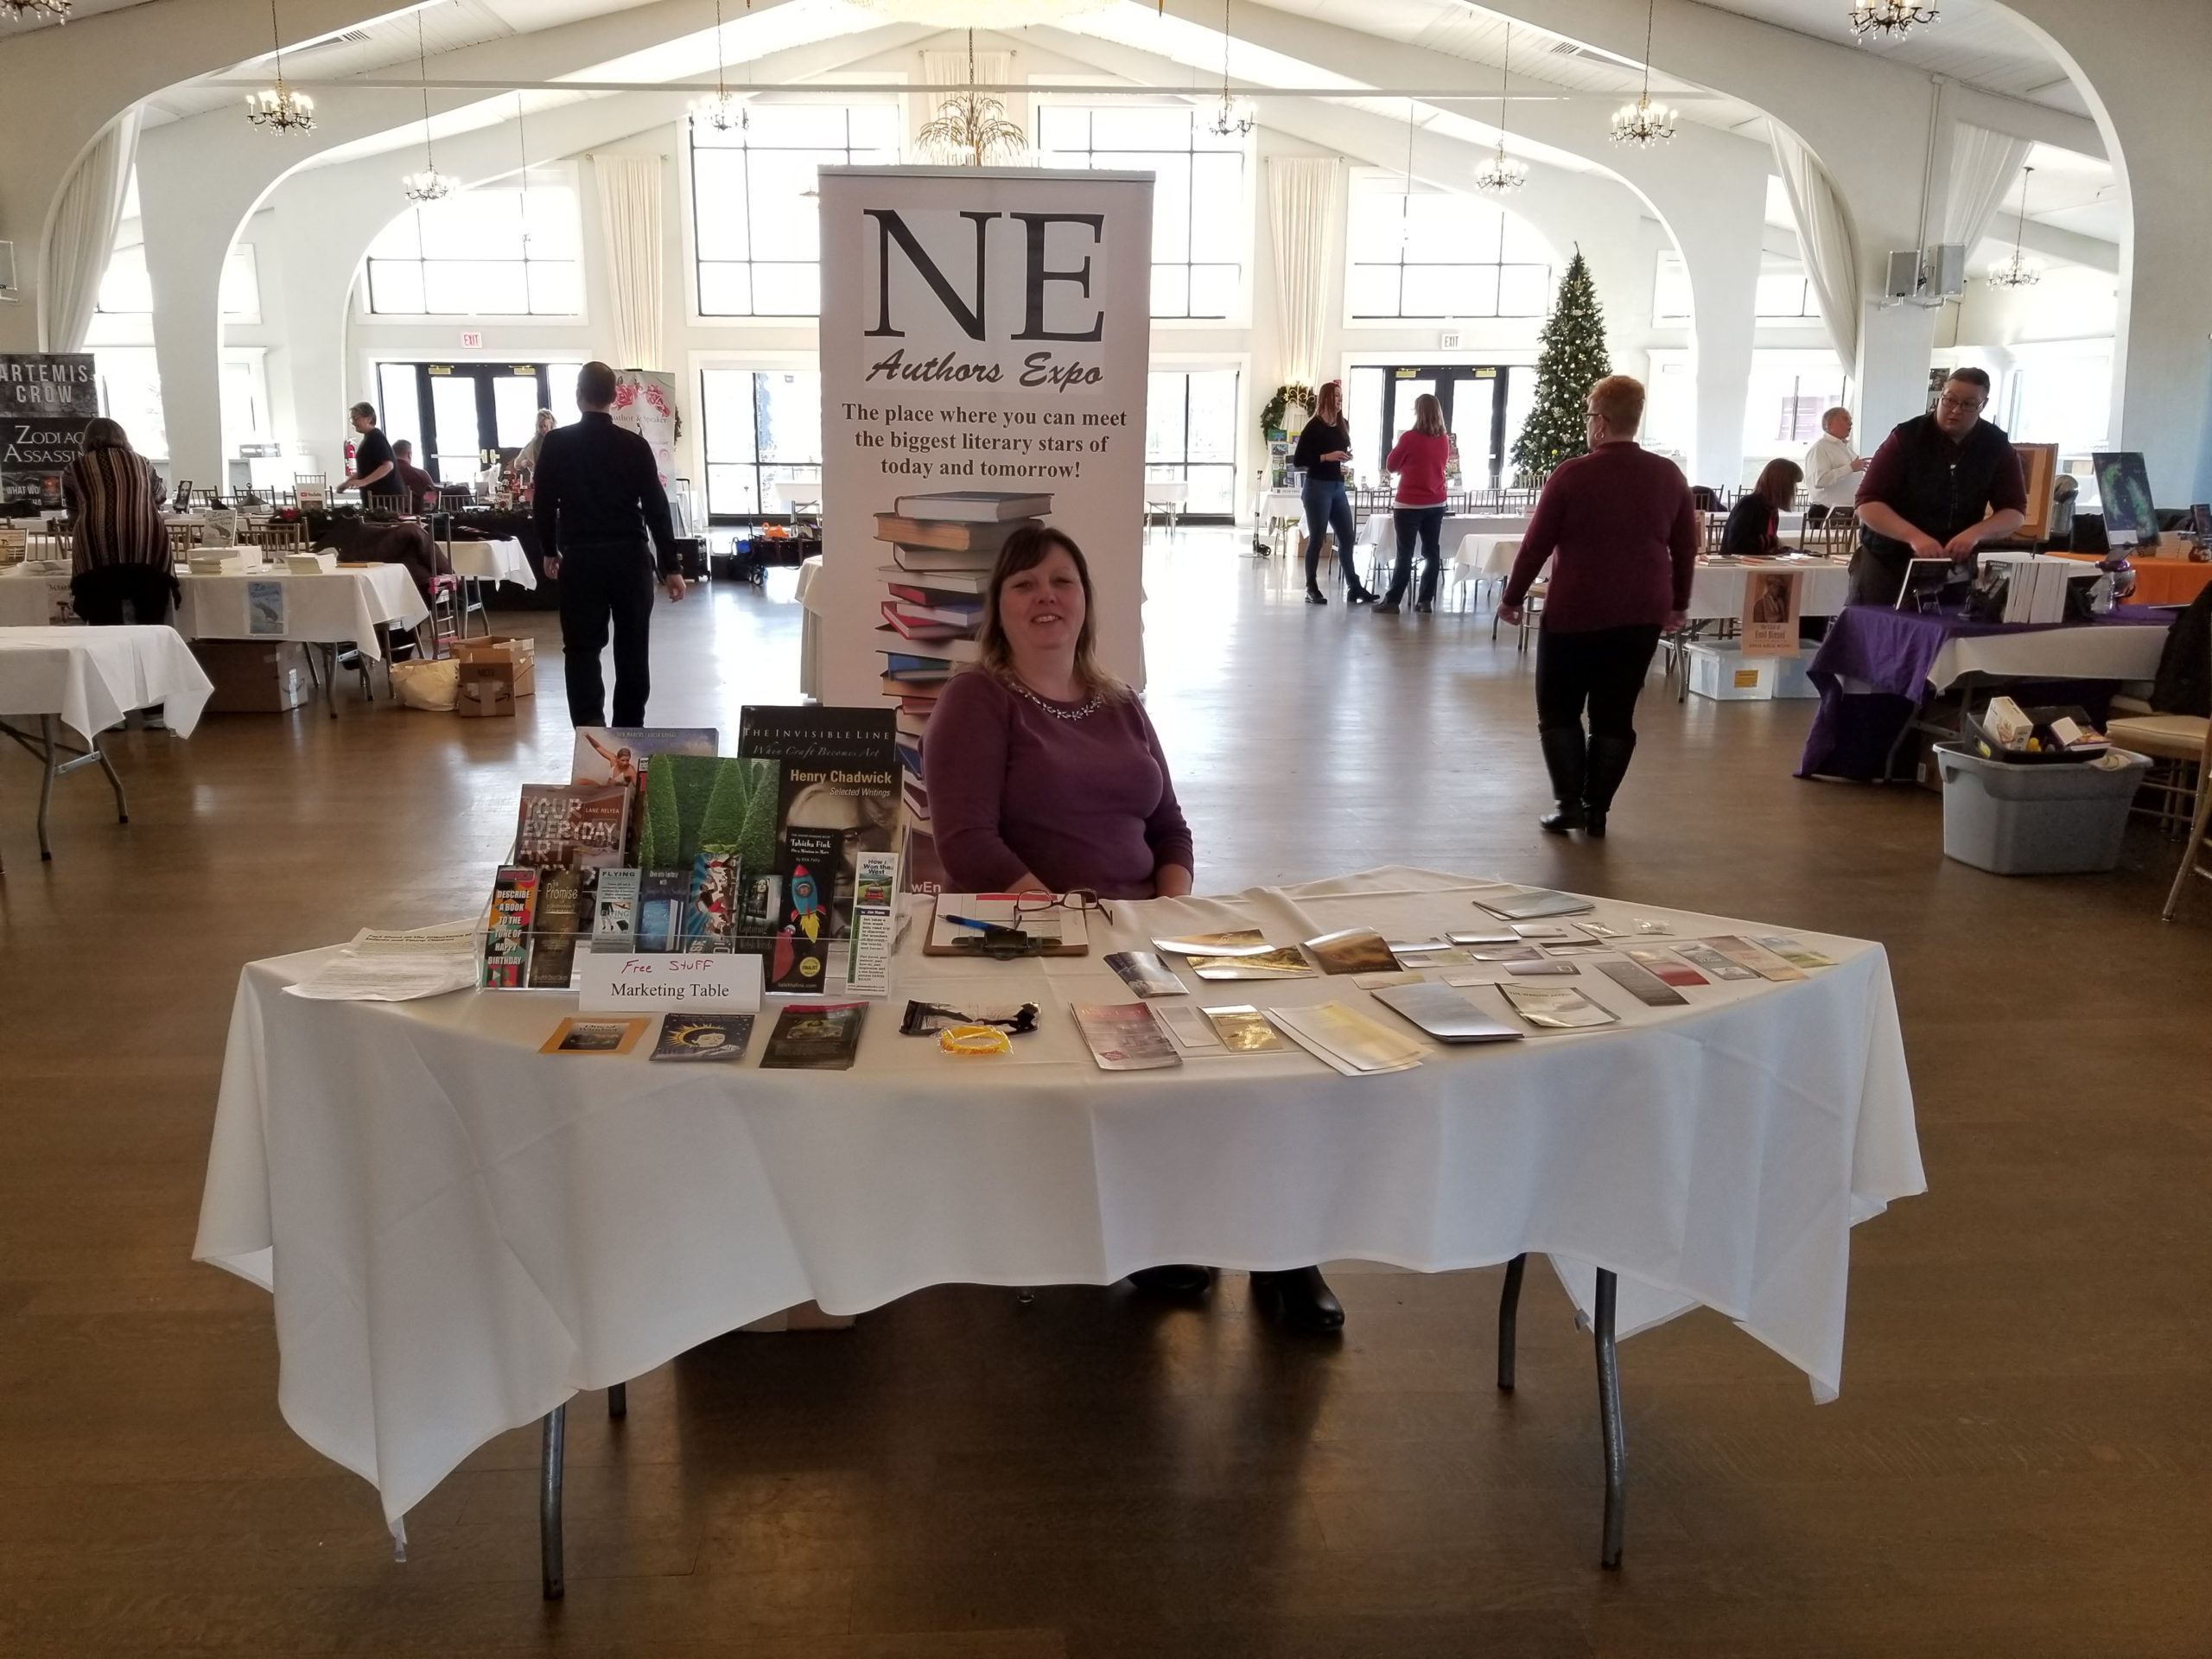 Nancy Obert at the New England Authors Expo Welcome Table